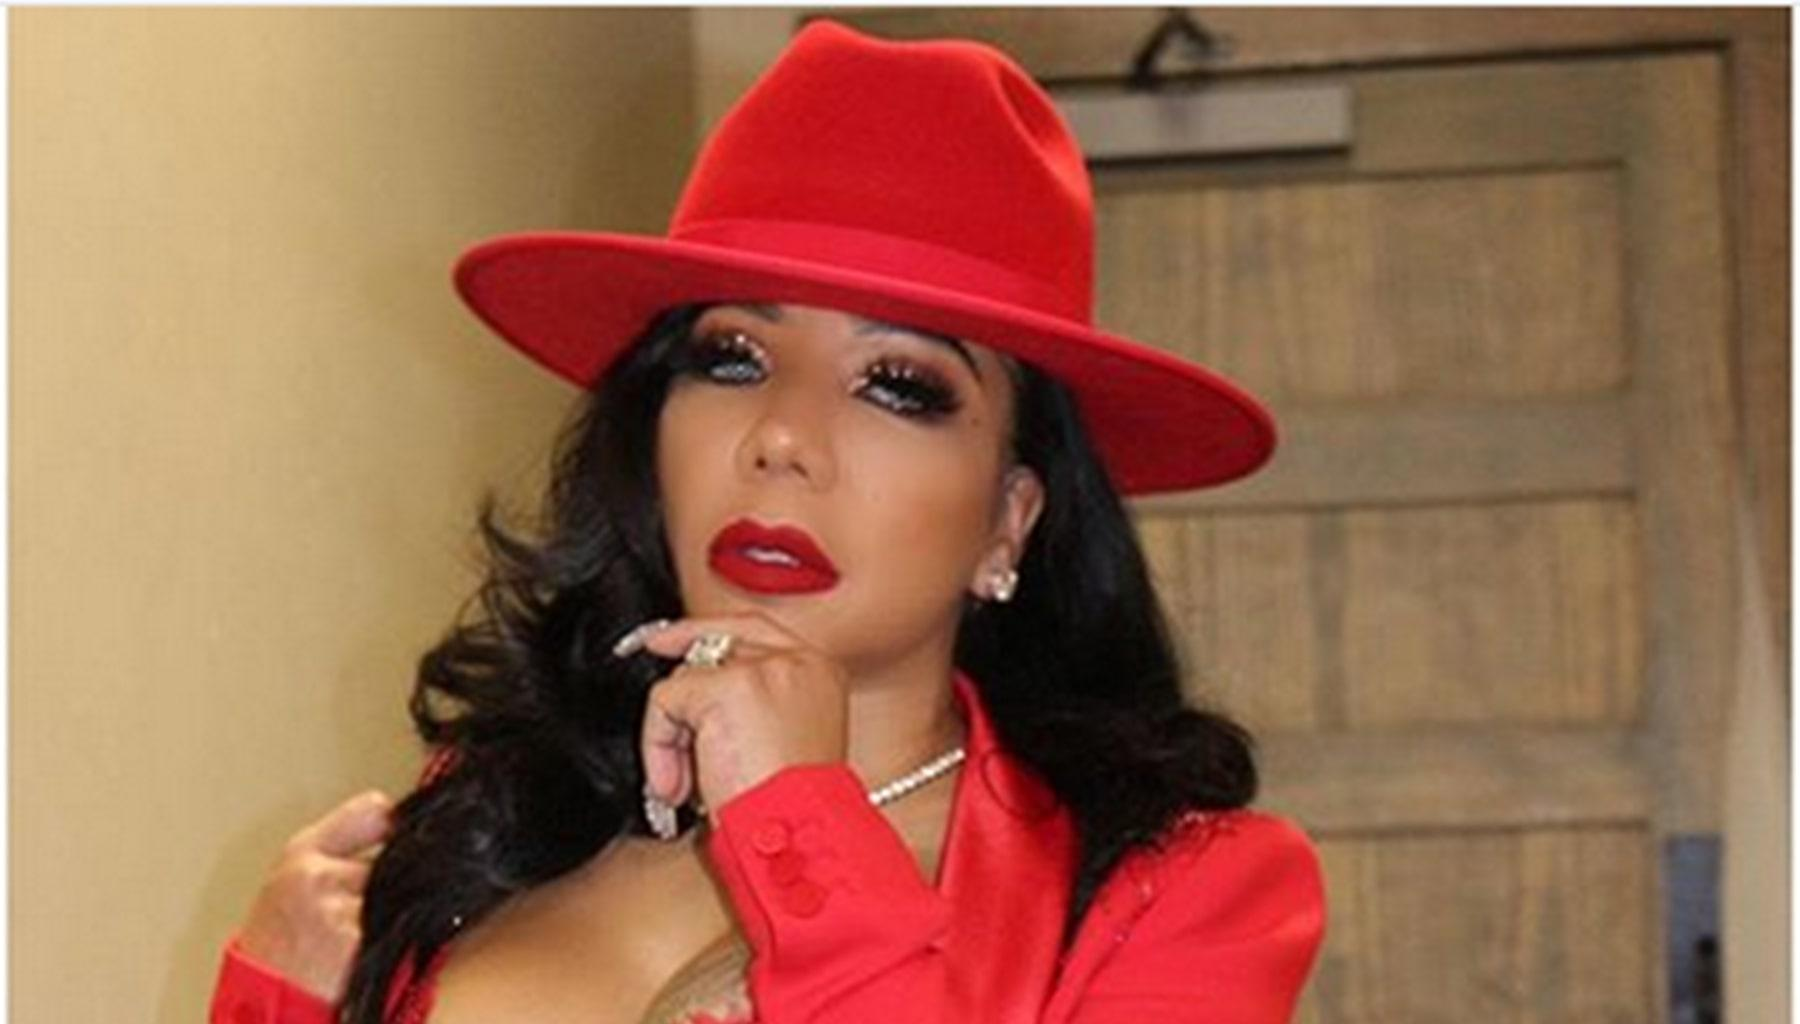 Tiny Harris Brings Out Her Spicy Alter Ego Out For A Solo Performance -- Pictures Show That Toya Wright And LeToya Luckett Were Present For The Sensual Event